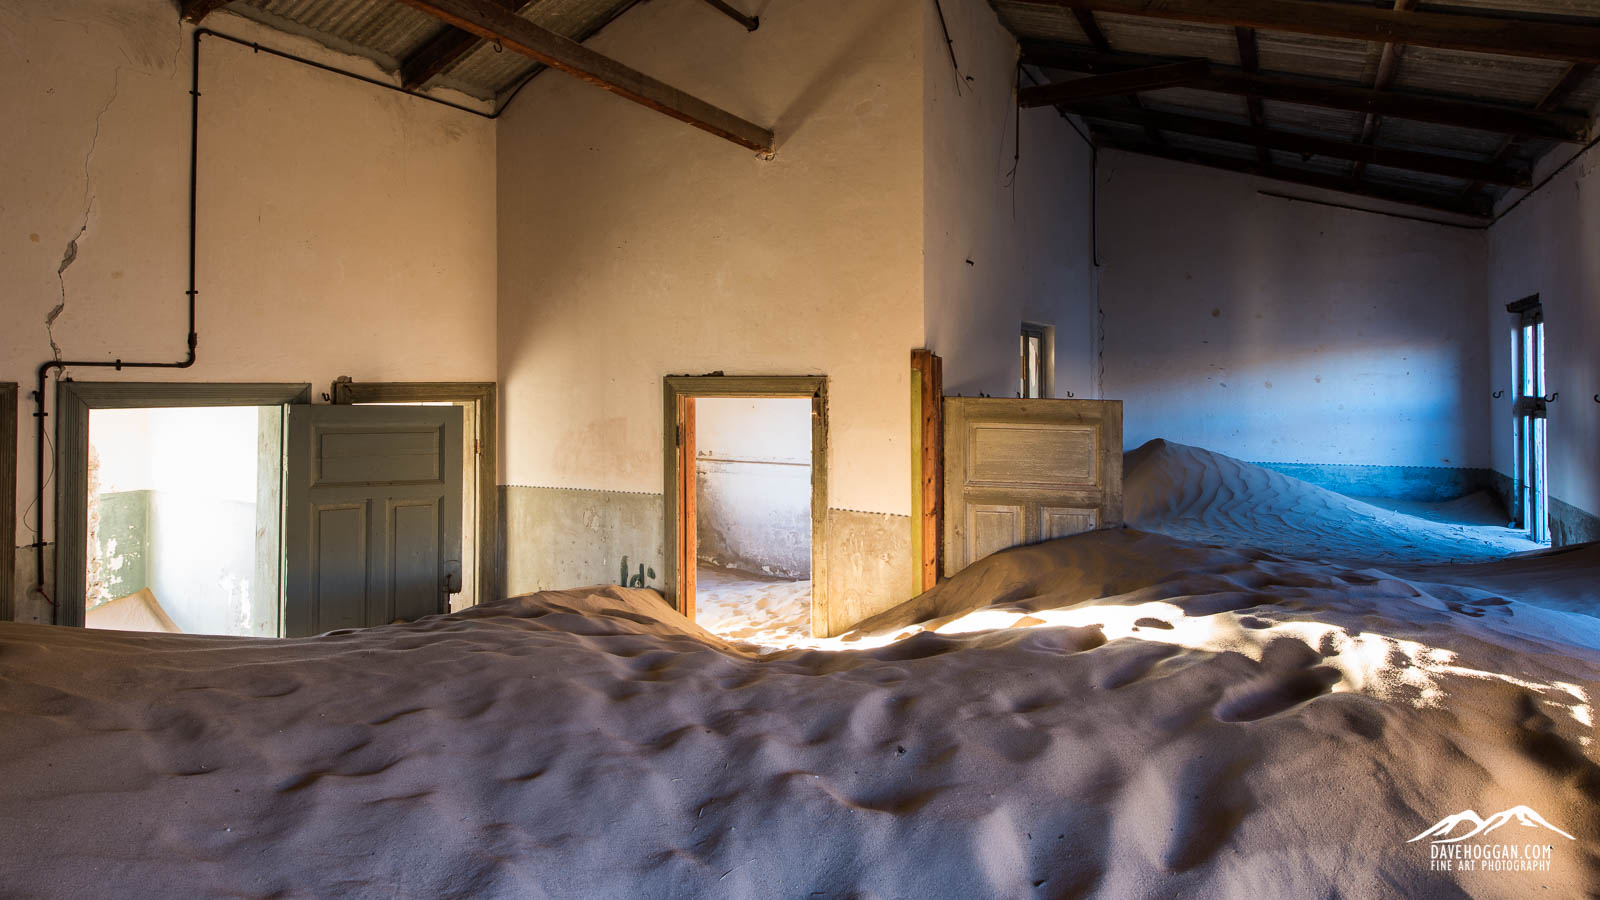 I could have easily spent an entire week at Kolmanskop…